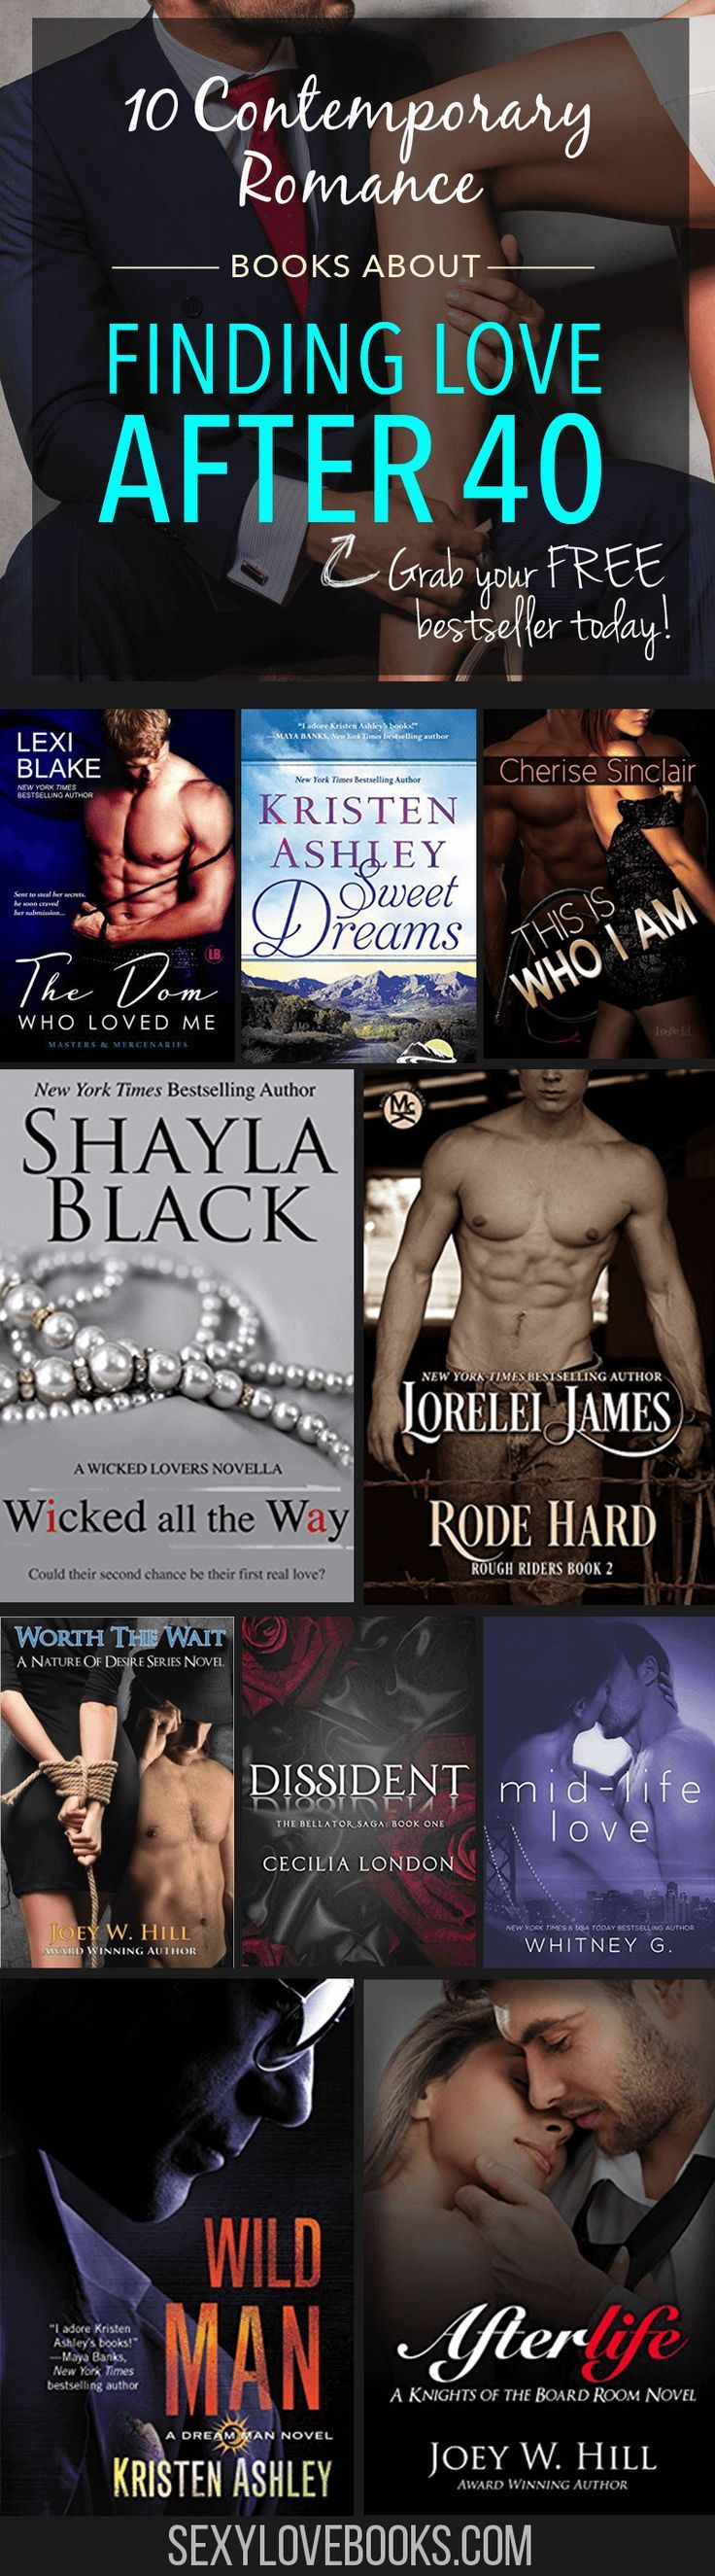 Love hot romance novels but tired of the same twenty-something characters? Add these 10 novels to your reading list ❤️ Get more at www.sexylovebooks.com by @swedenreese